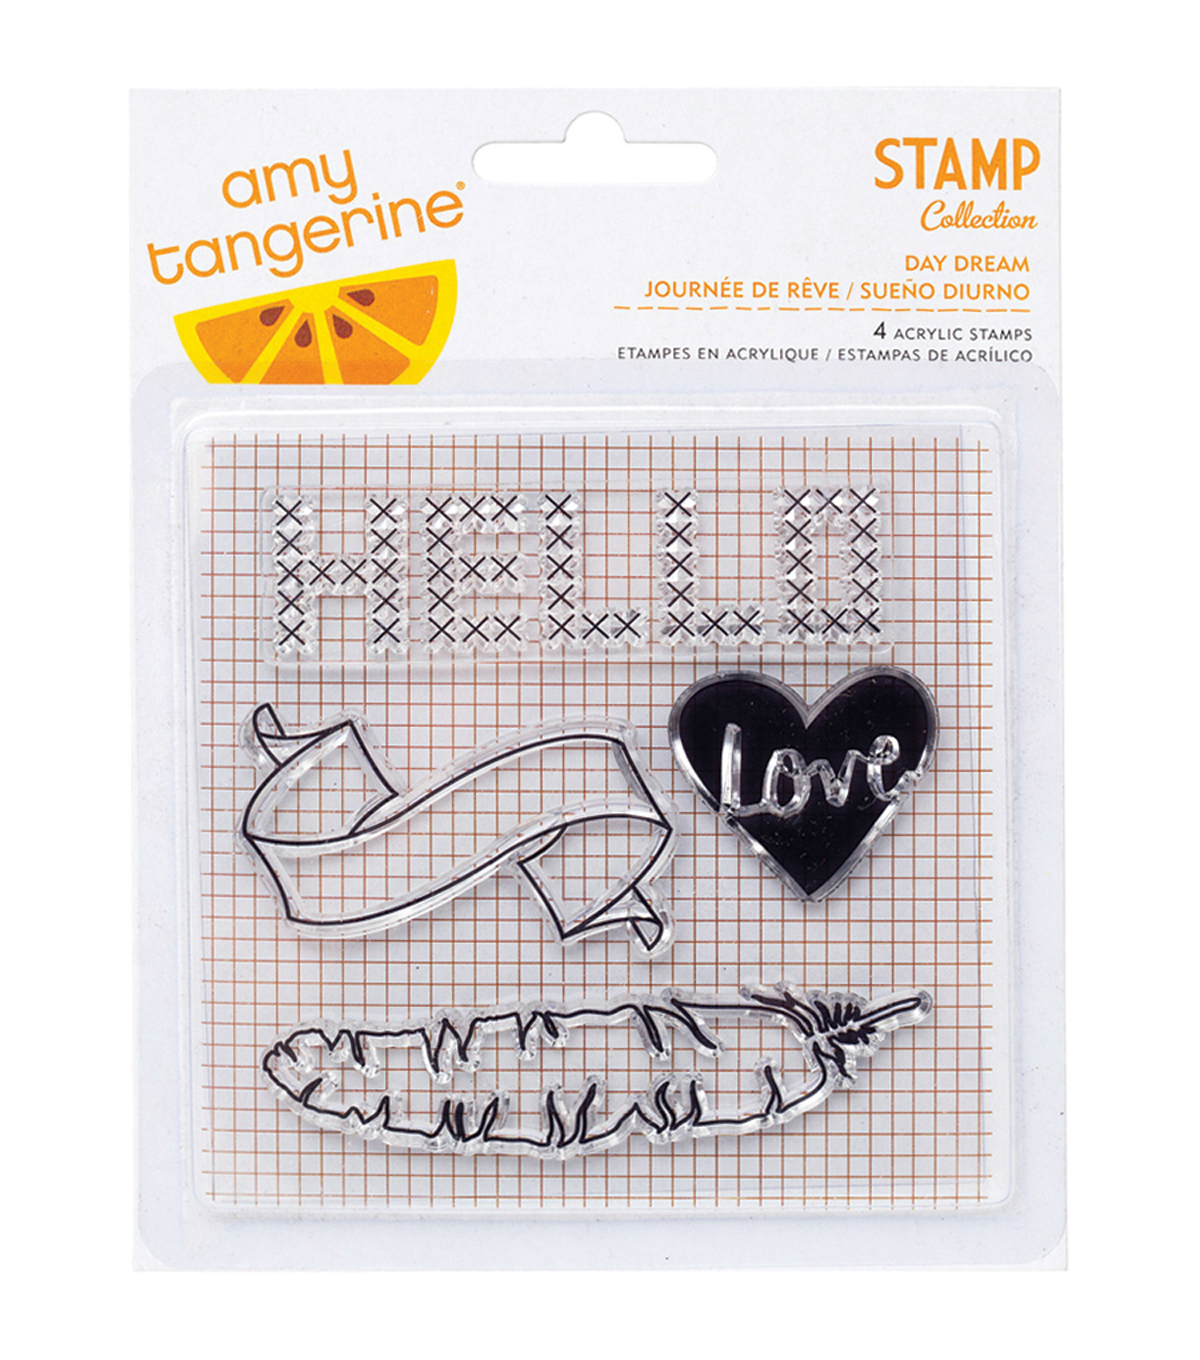 American Crafts Amy Tangerine Day Dream Stitched Clear Acrylic Stamps